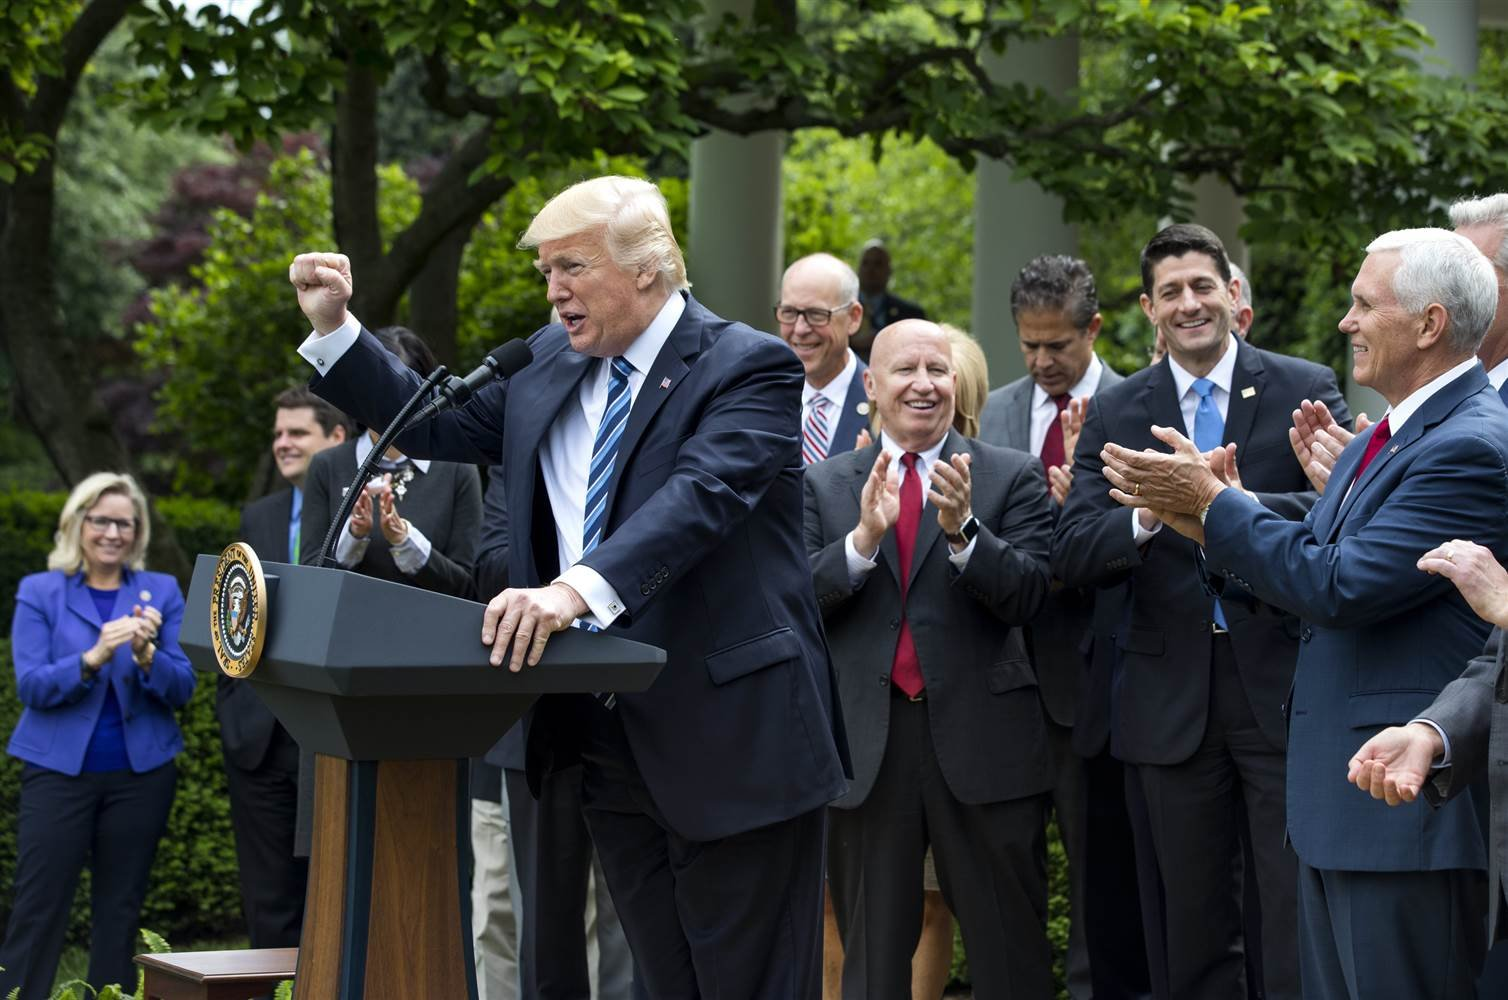 US President Donald J. Trump, along with GOP lawmakers, speaks after the House voted to repeal and replace Obamacare with a Republican version of the health care law in the Rose Garden of the White House in Washington on May 4, 2017. - Jim Lo Scalzo / EPA